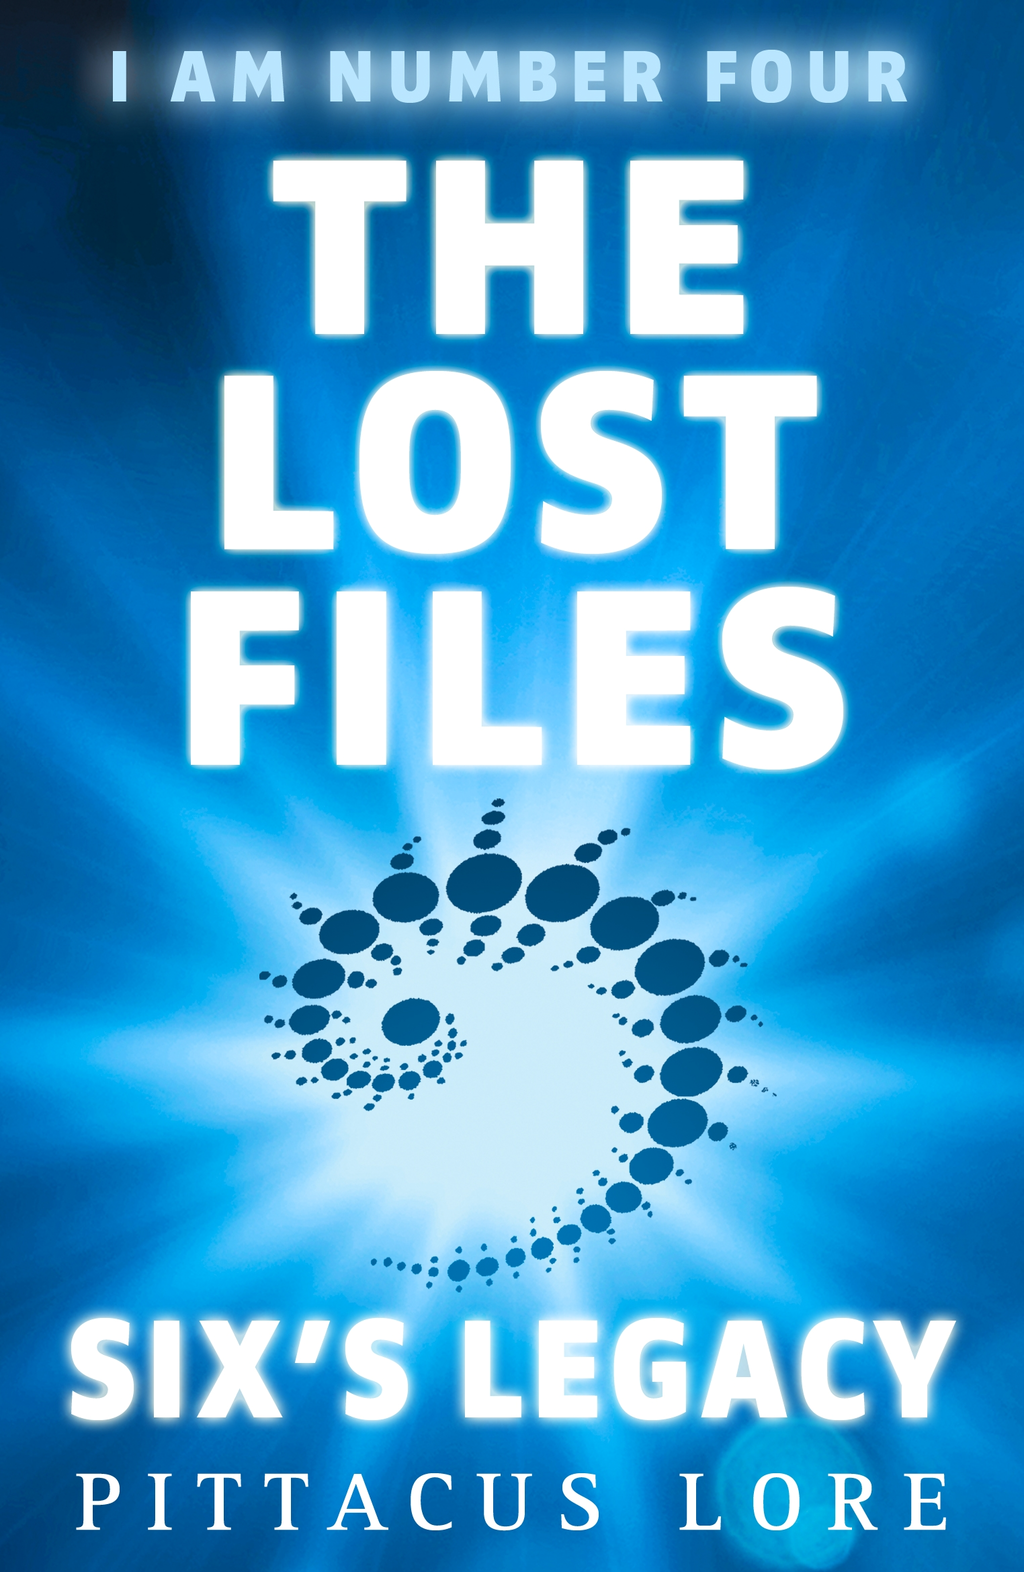 I Am Number Four: The Lost Files: Six's Legacy The Lost Files: Six's Legacy